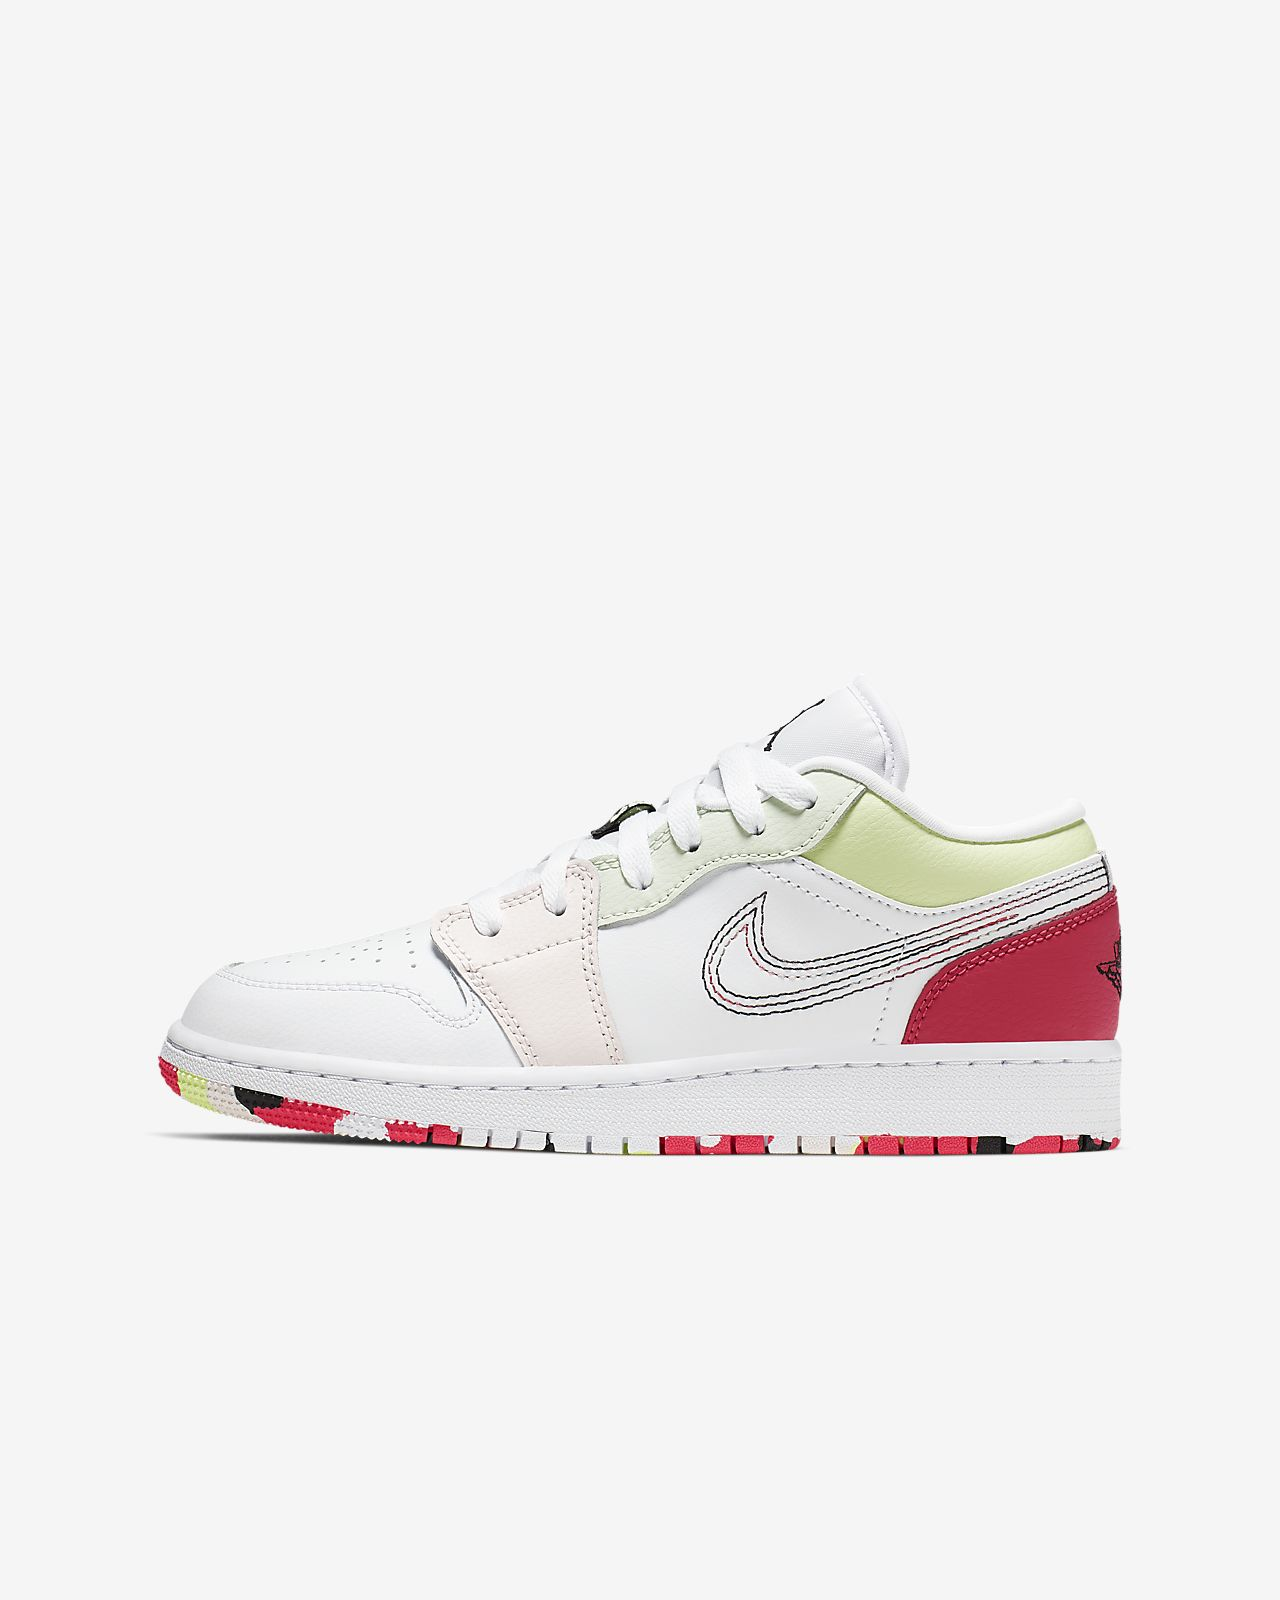 competitive price f6867 09e81 Air Jordan 1 Low Big Kids' (Girls') Shoe